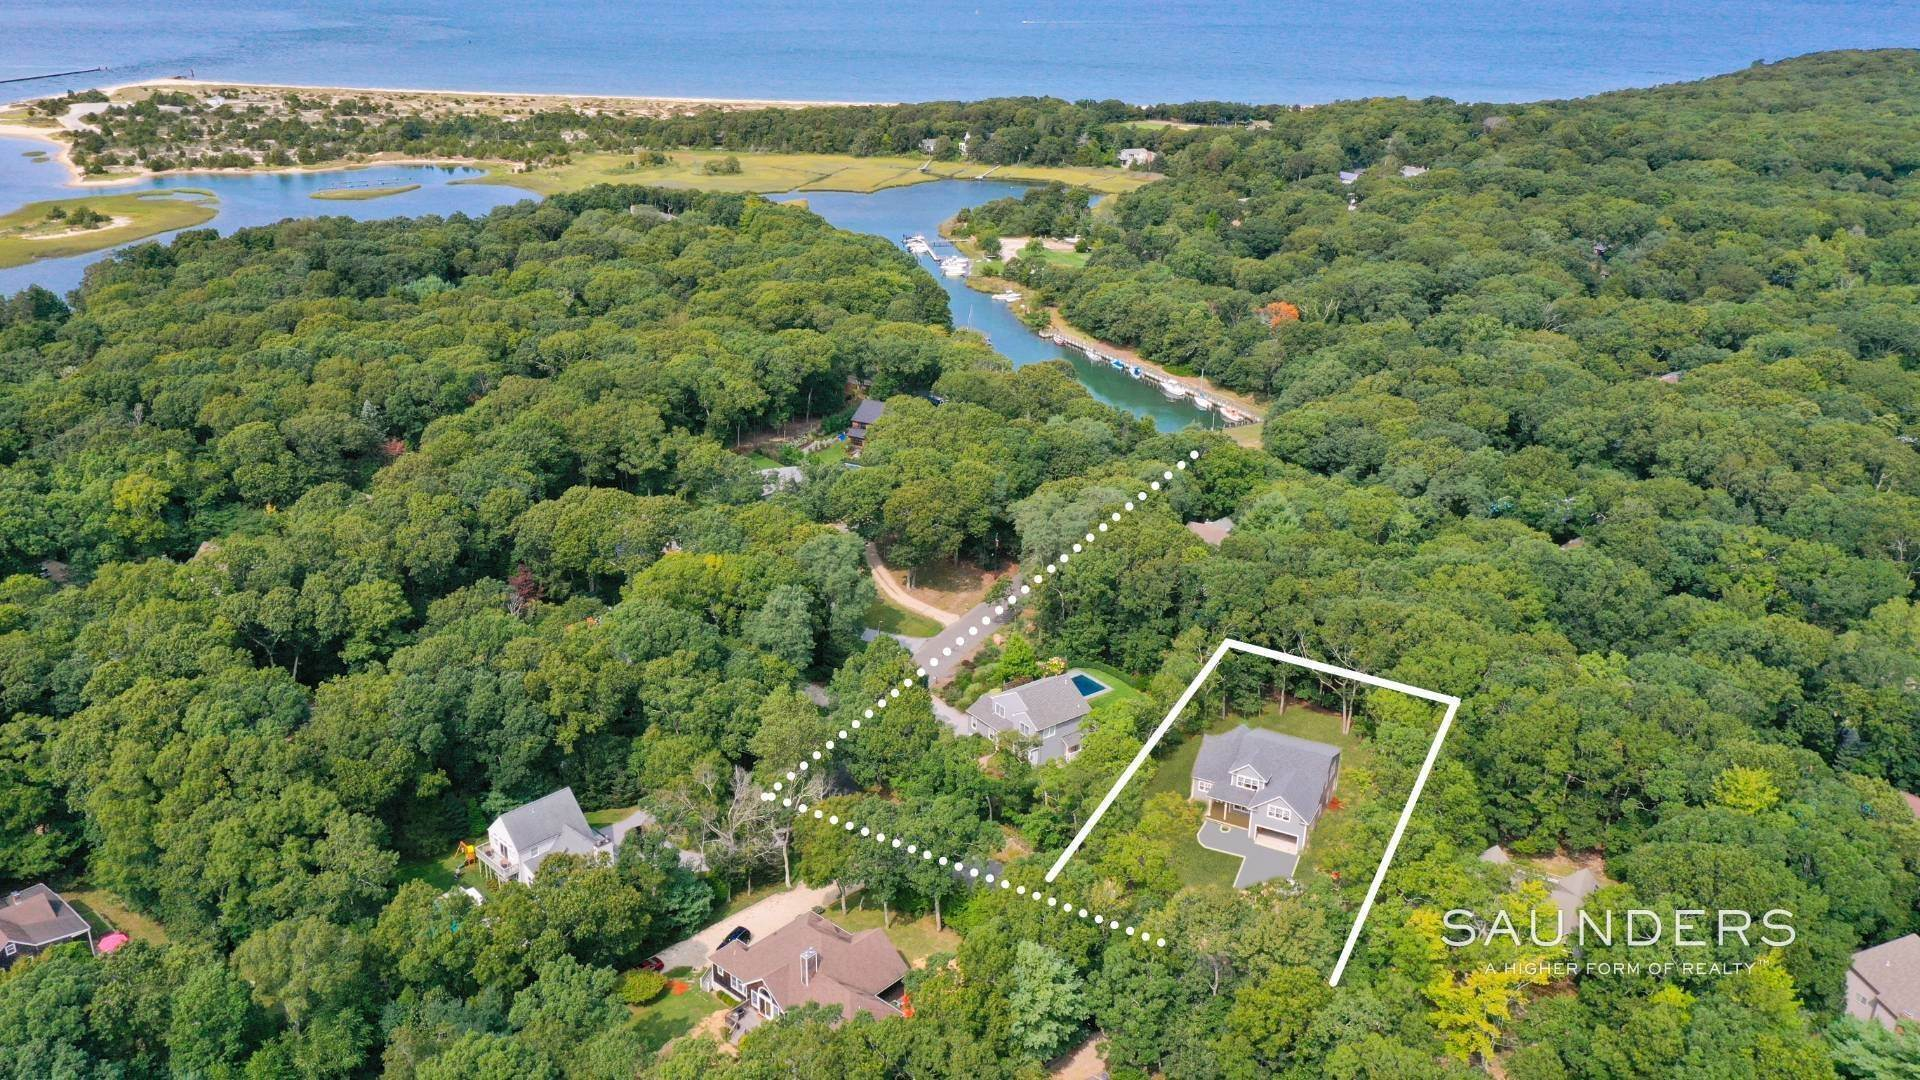 Single Family Homes for Sale at New Construction With Deeded Boat Slip 29 Salt Marsh Path, East Hampton, East Hampton Town, NY 11937